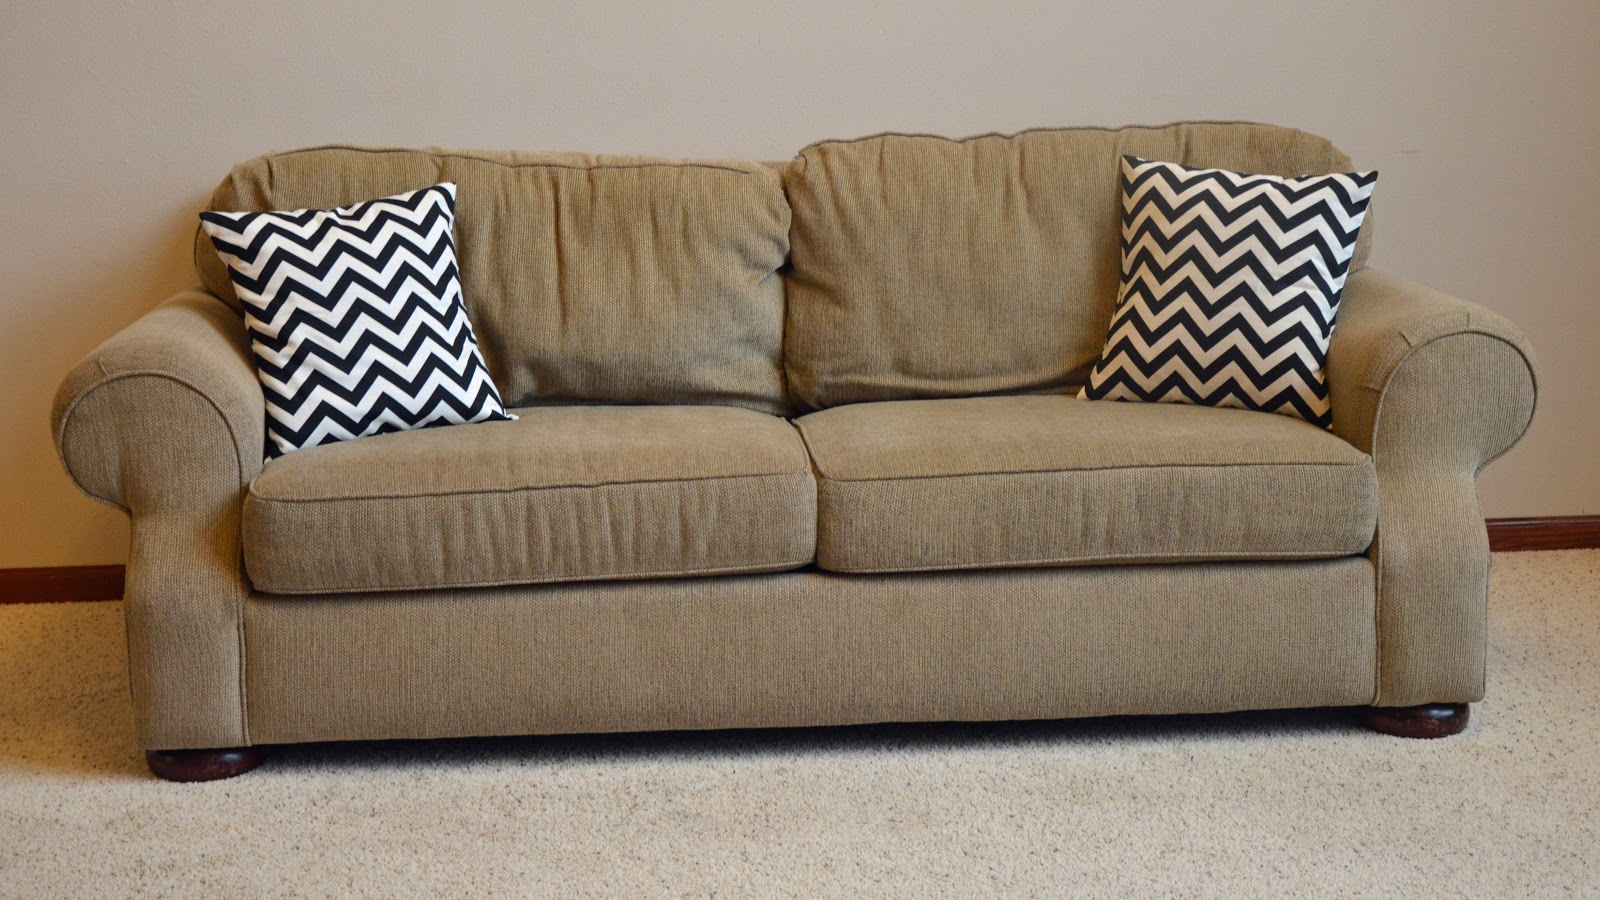 Pillows For Couches On Sale